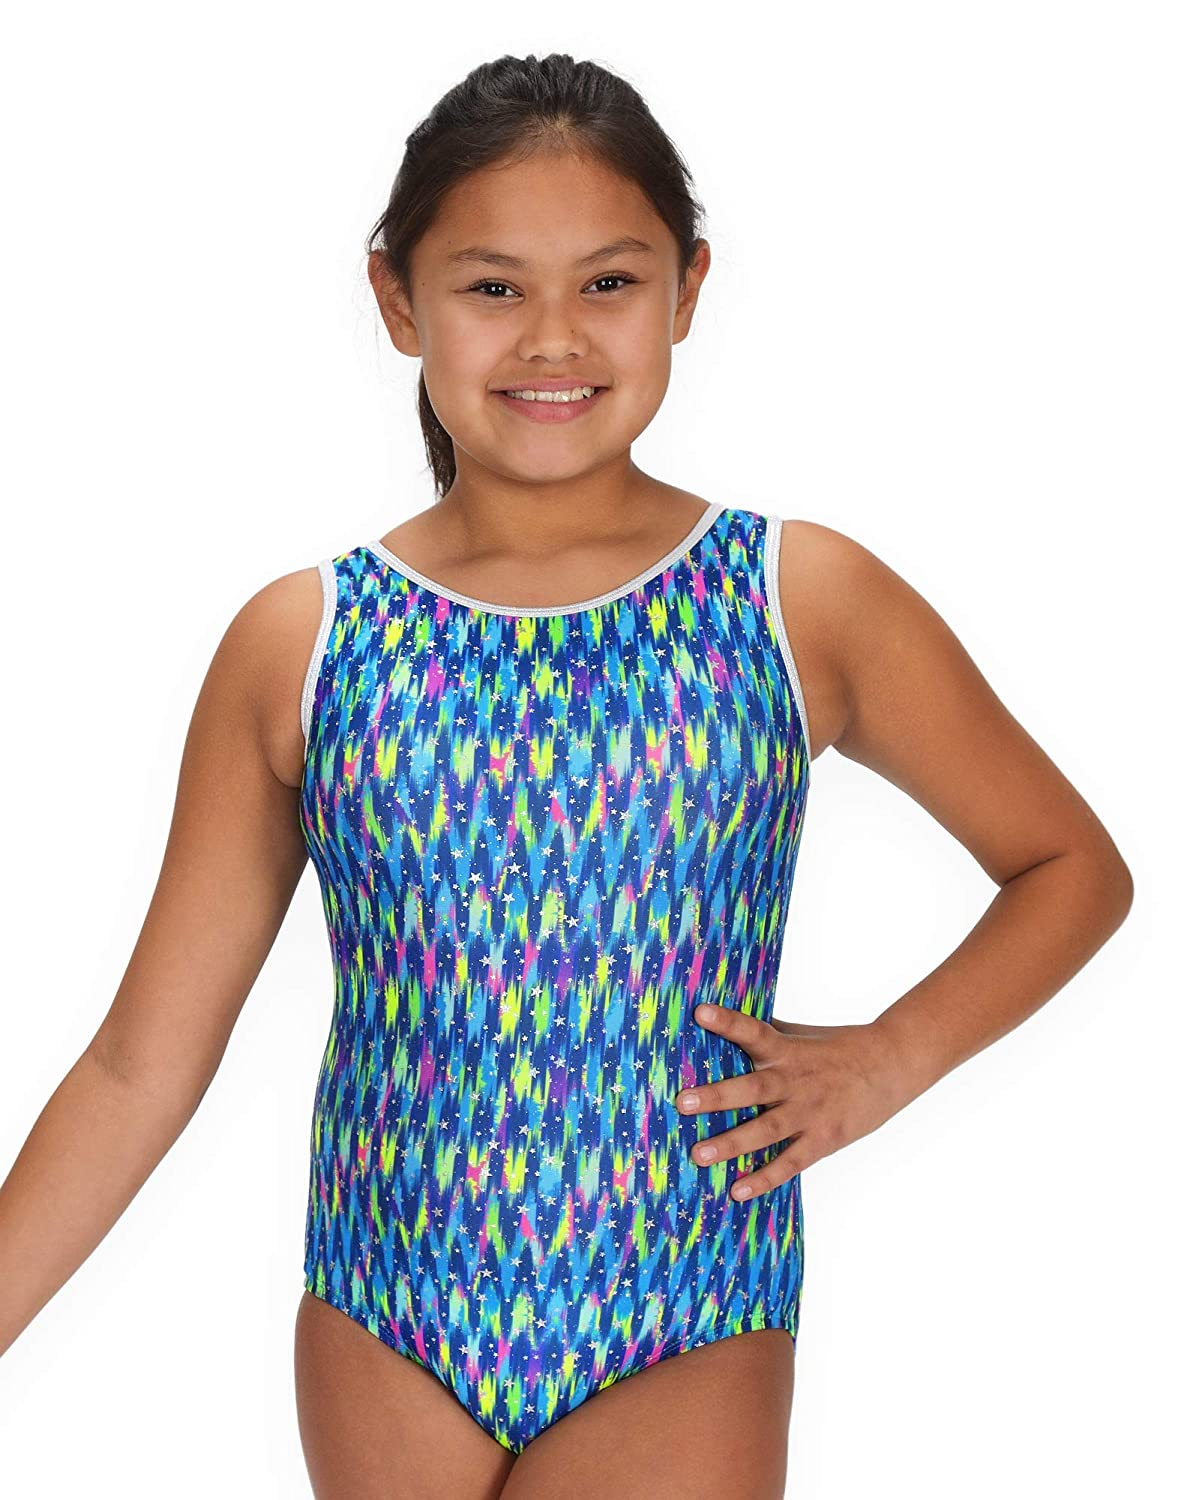 1ffa74590c2b Amazon.com : Pelle Leap Gear Gymnastics Leotard for Girls - Turquoise,  Teal, Blue and Green Collection : Sports & Outdoors